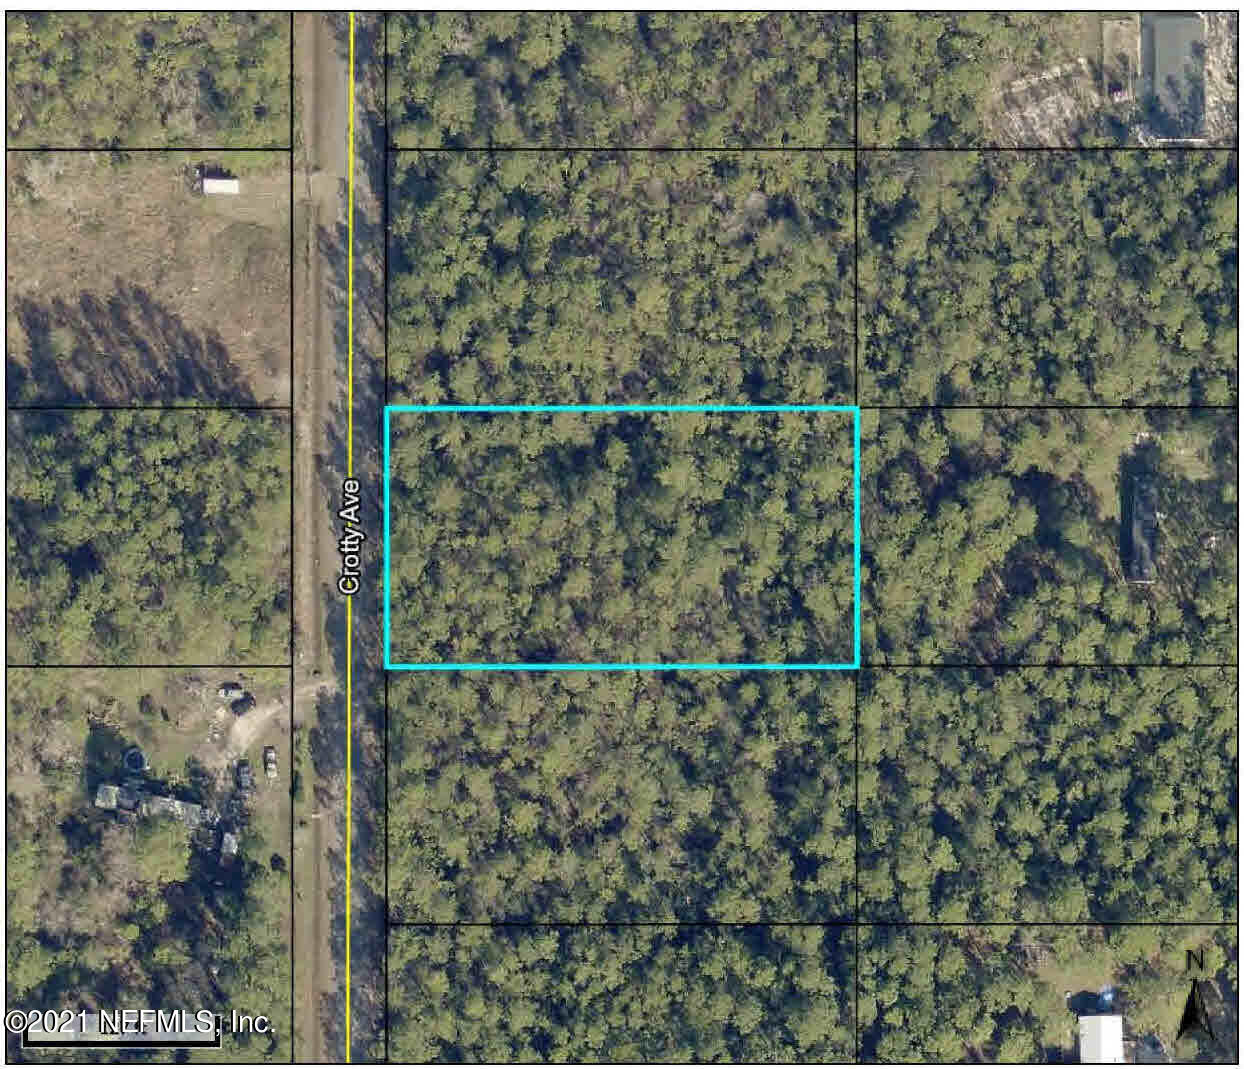 9930 CROTTY, HASTINGS, FLORIDA 32145, ,Vacant land,For sale,CROTTY,1136669